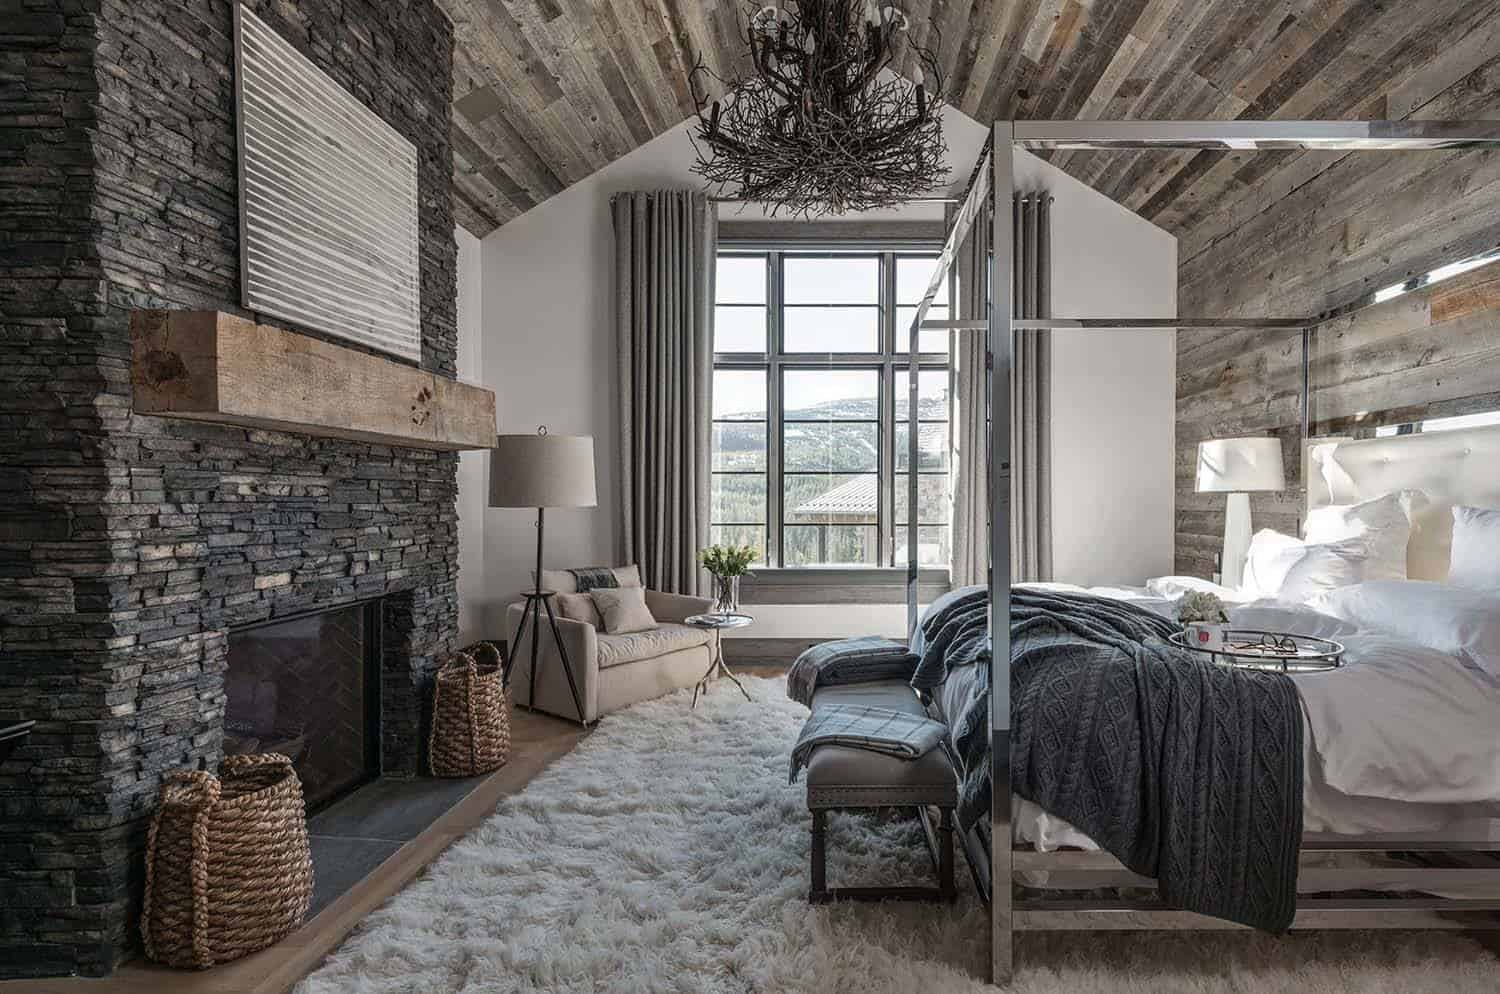 Rustic-Mountain-Chalet-Locati-Architects-09-1-Kindesign